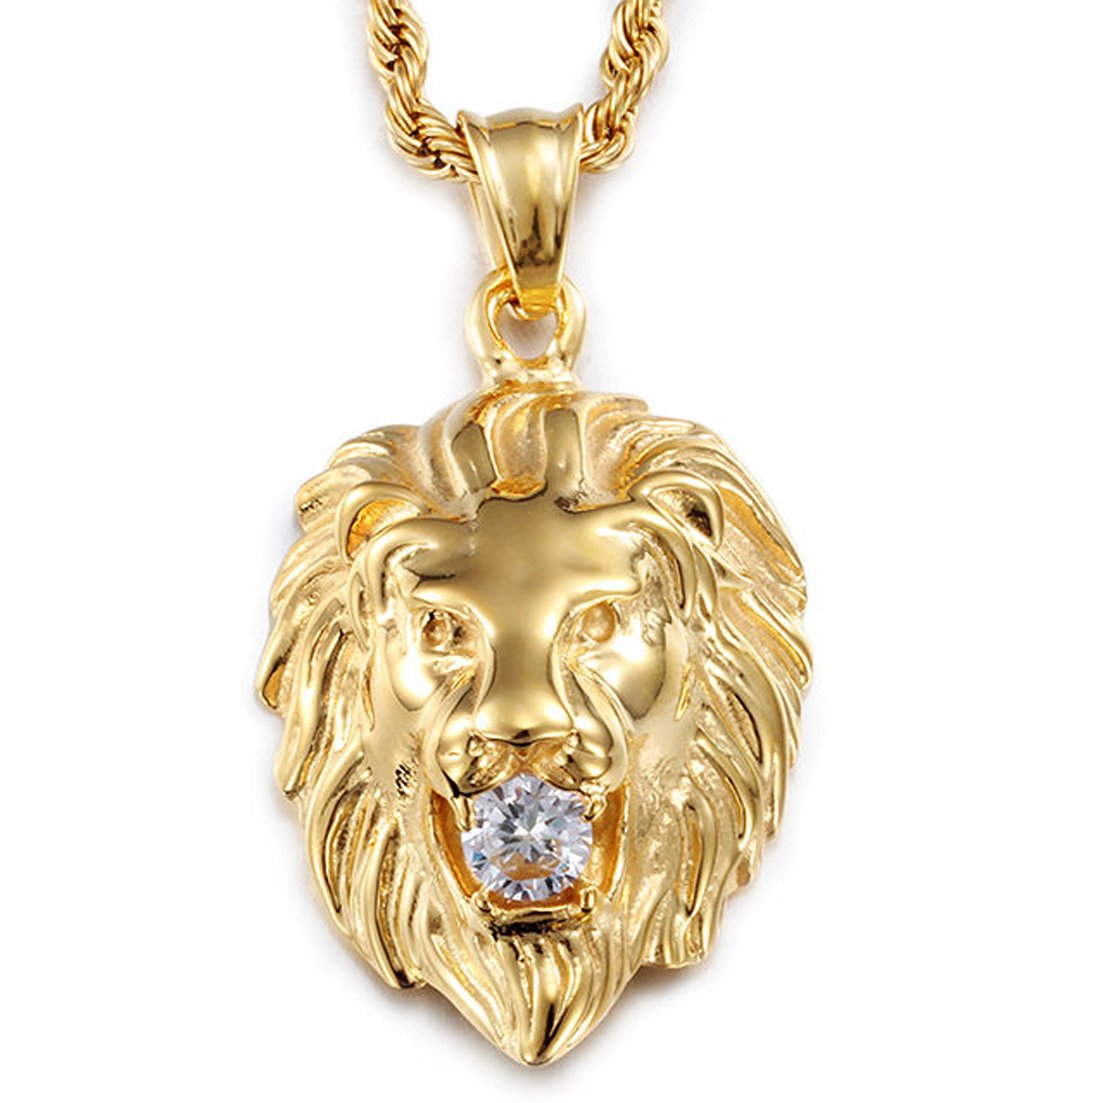 Stainless Steel Vintage Men's Gold Lion Pendant Necklace White Stone Rope Chain